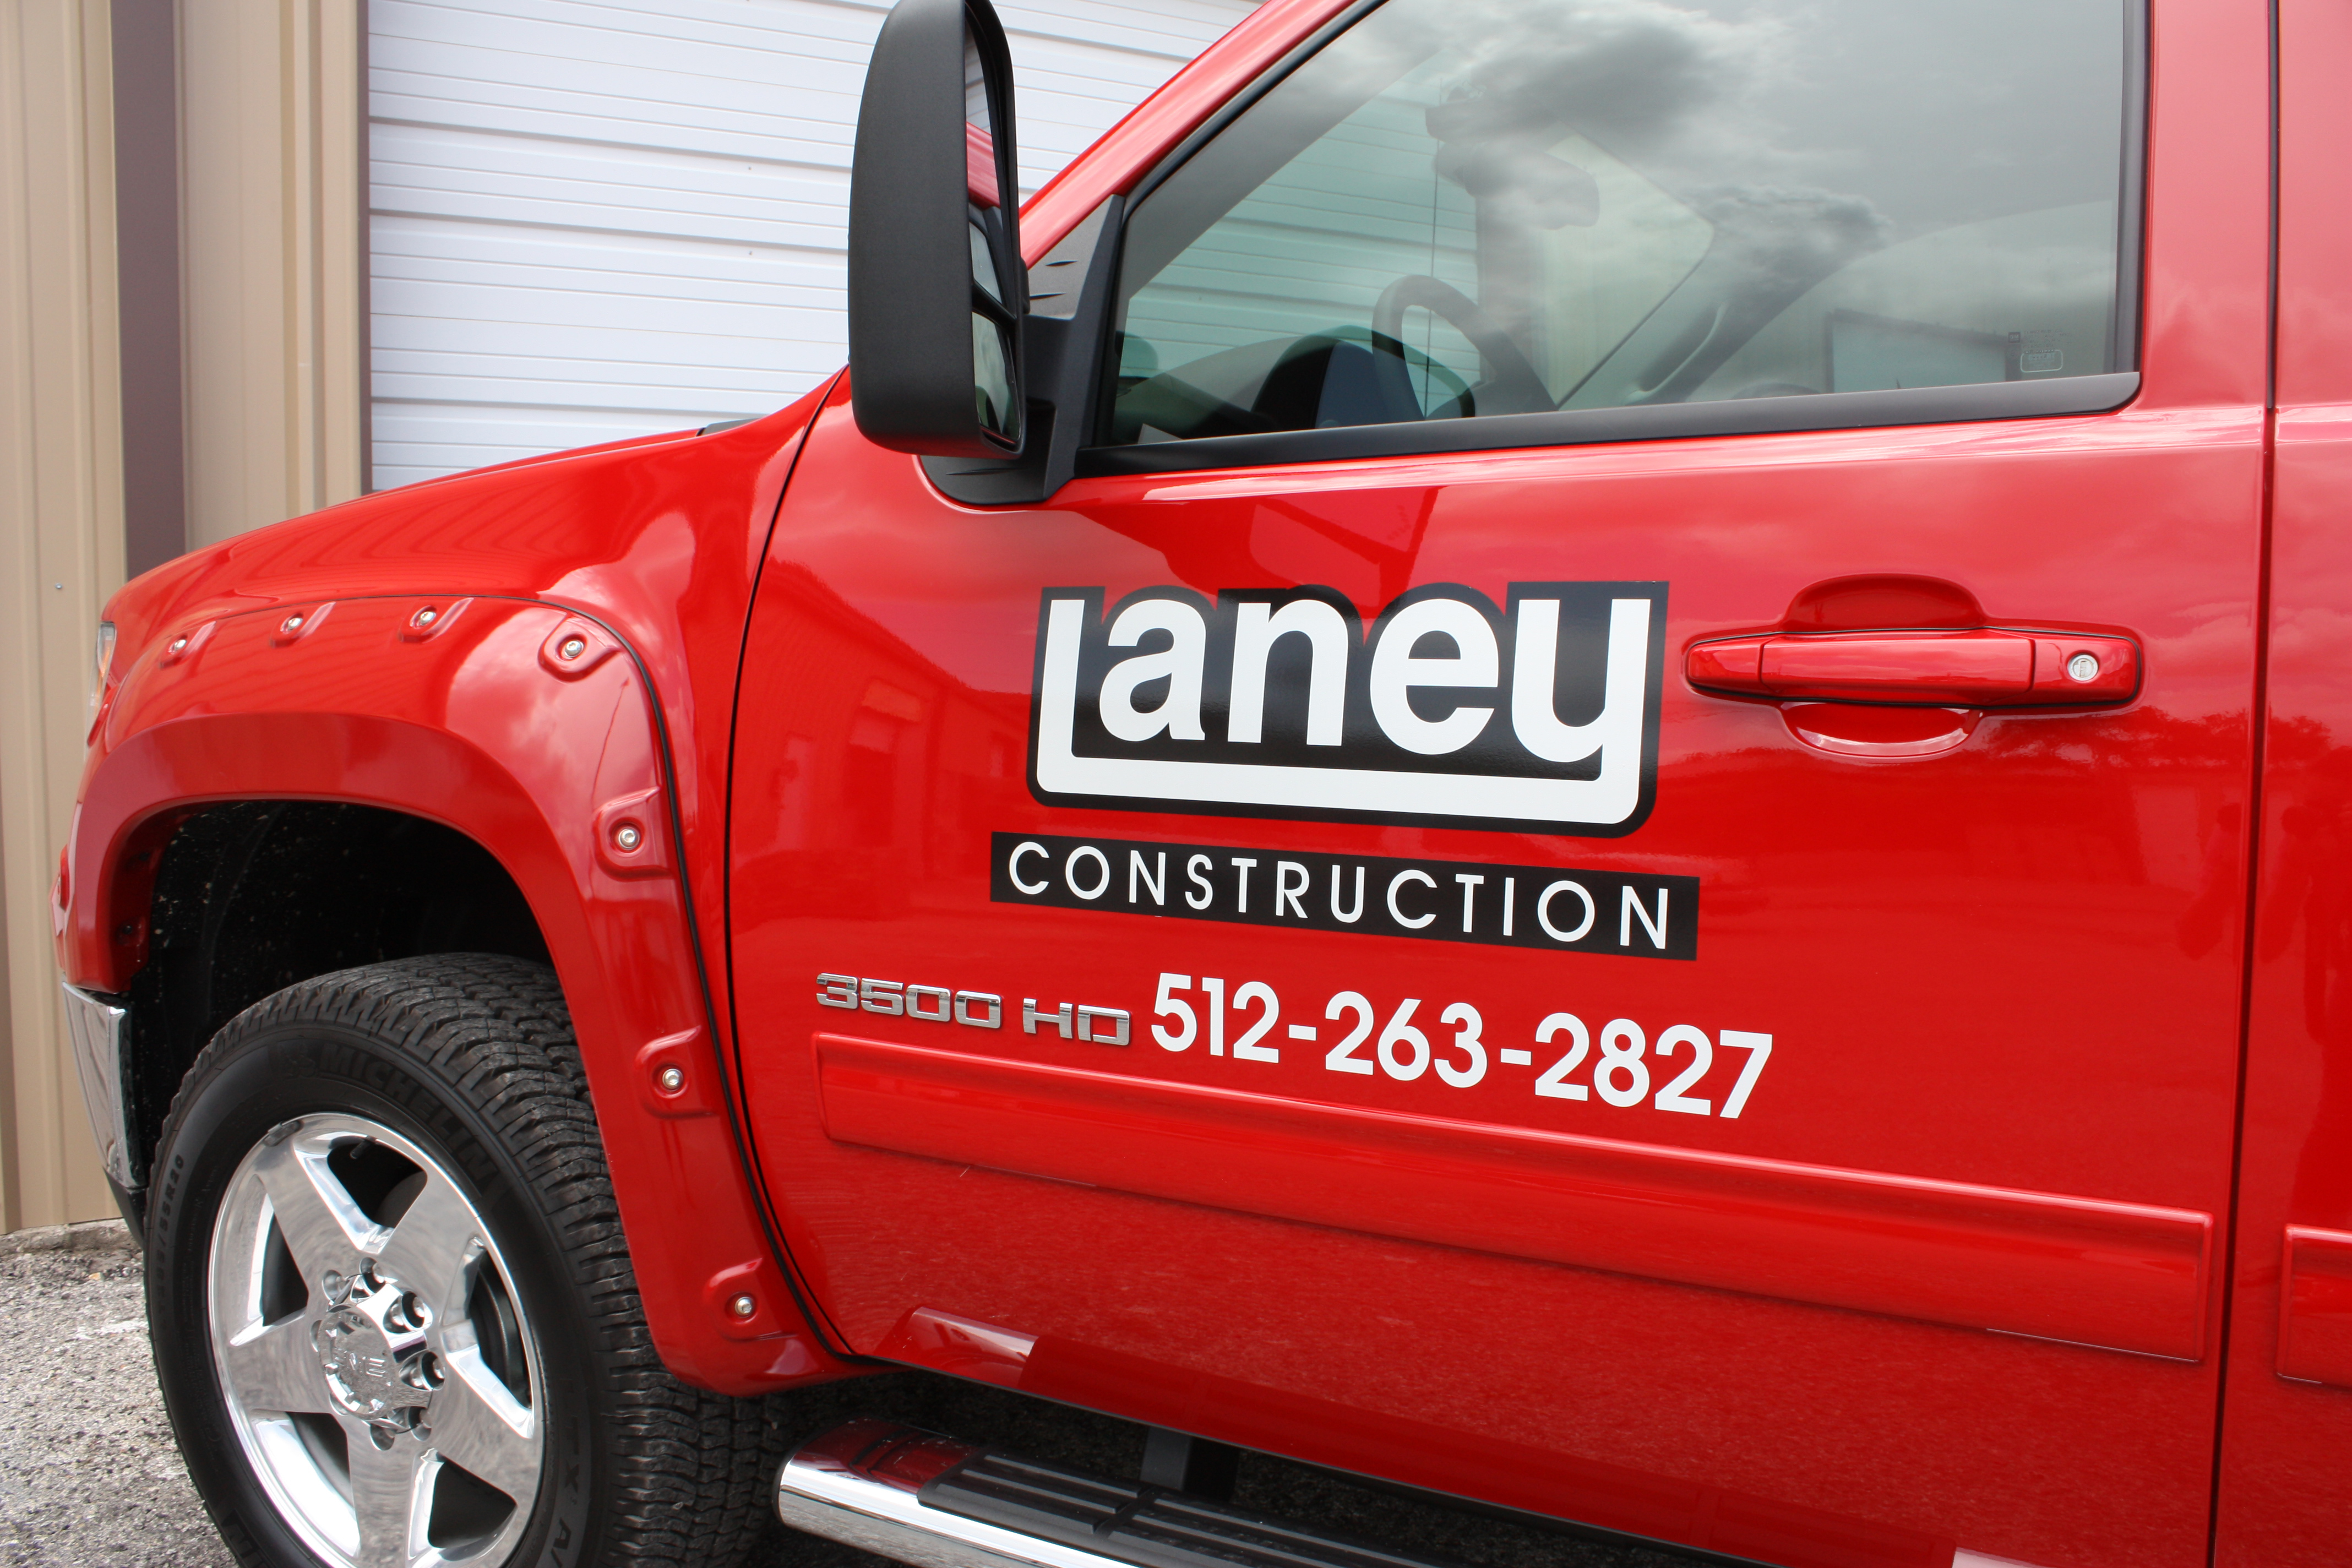 Laney Construction Truck Lettering